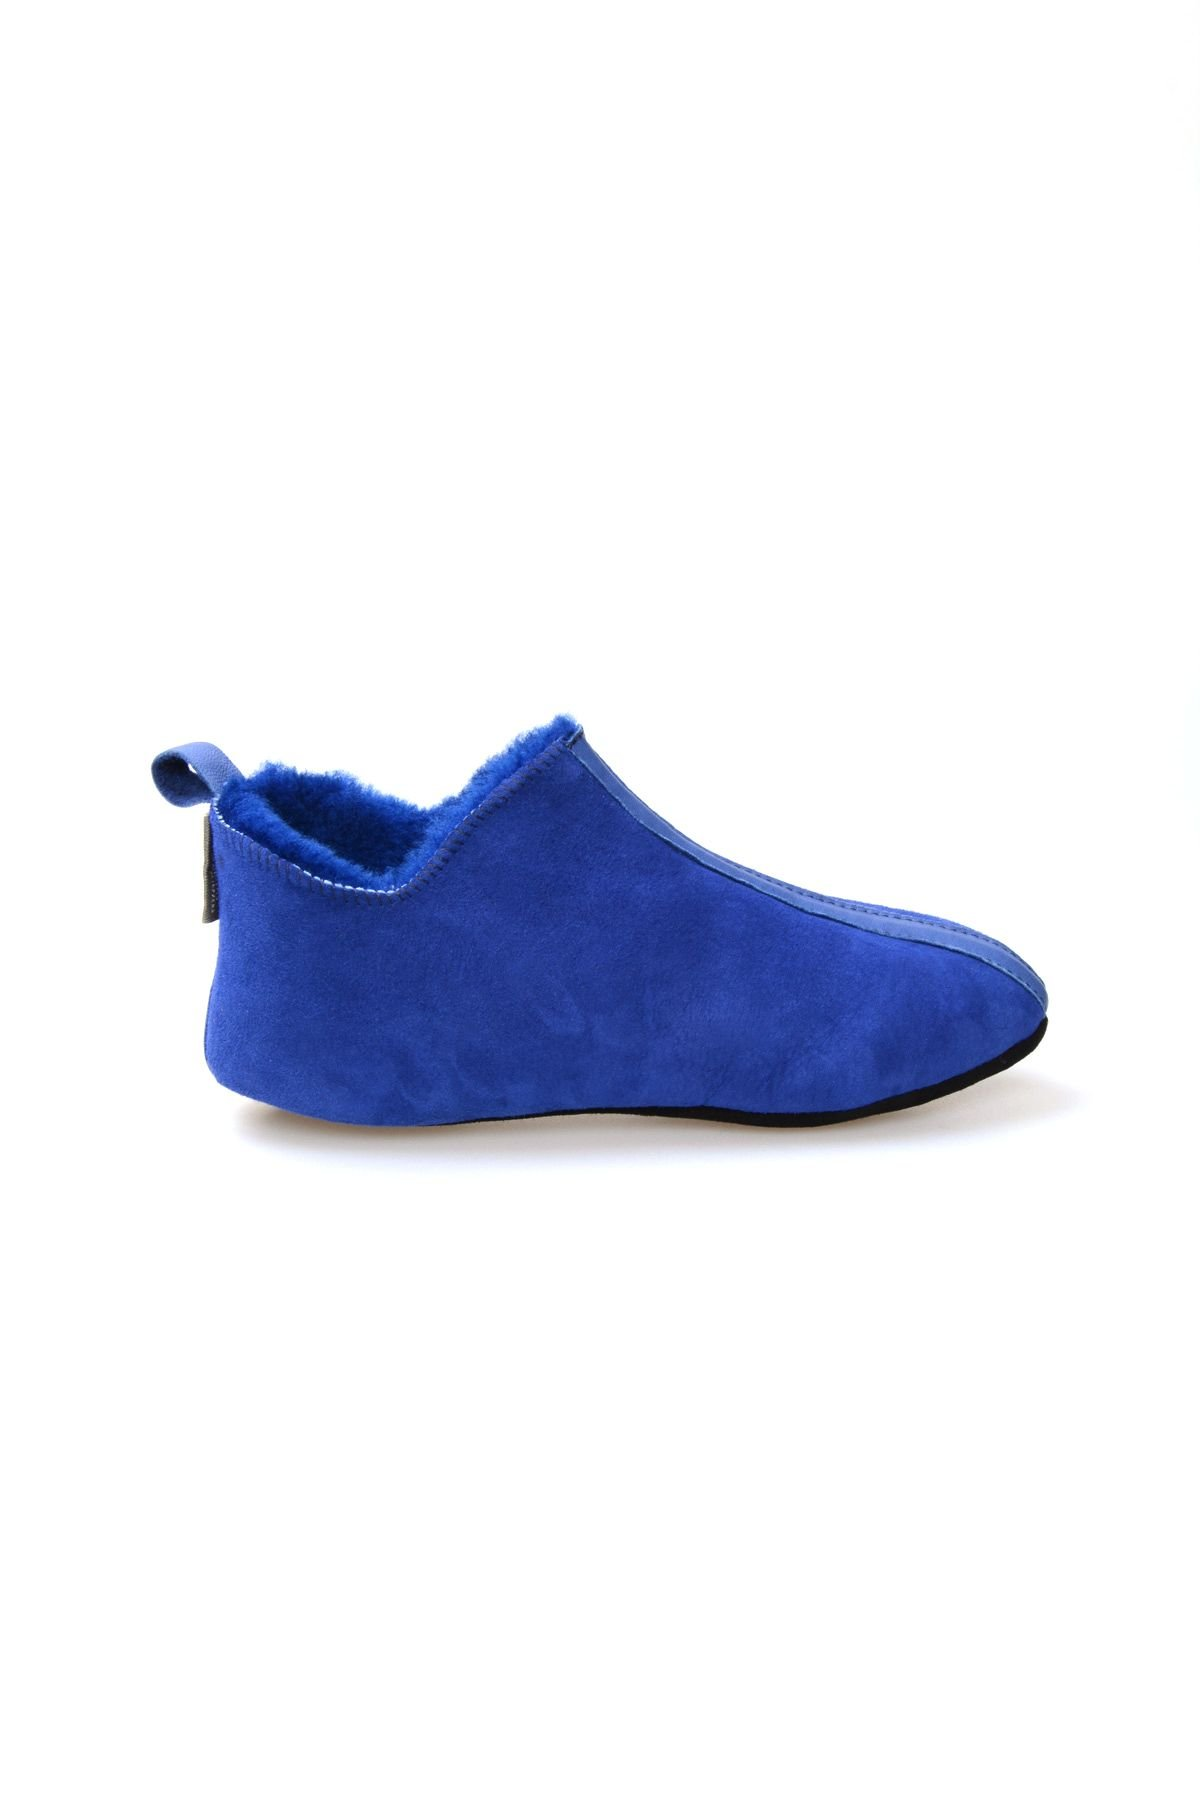 Pegia Men's Suede Sheepskin Slippers 111010 Blue